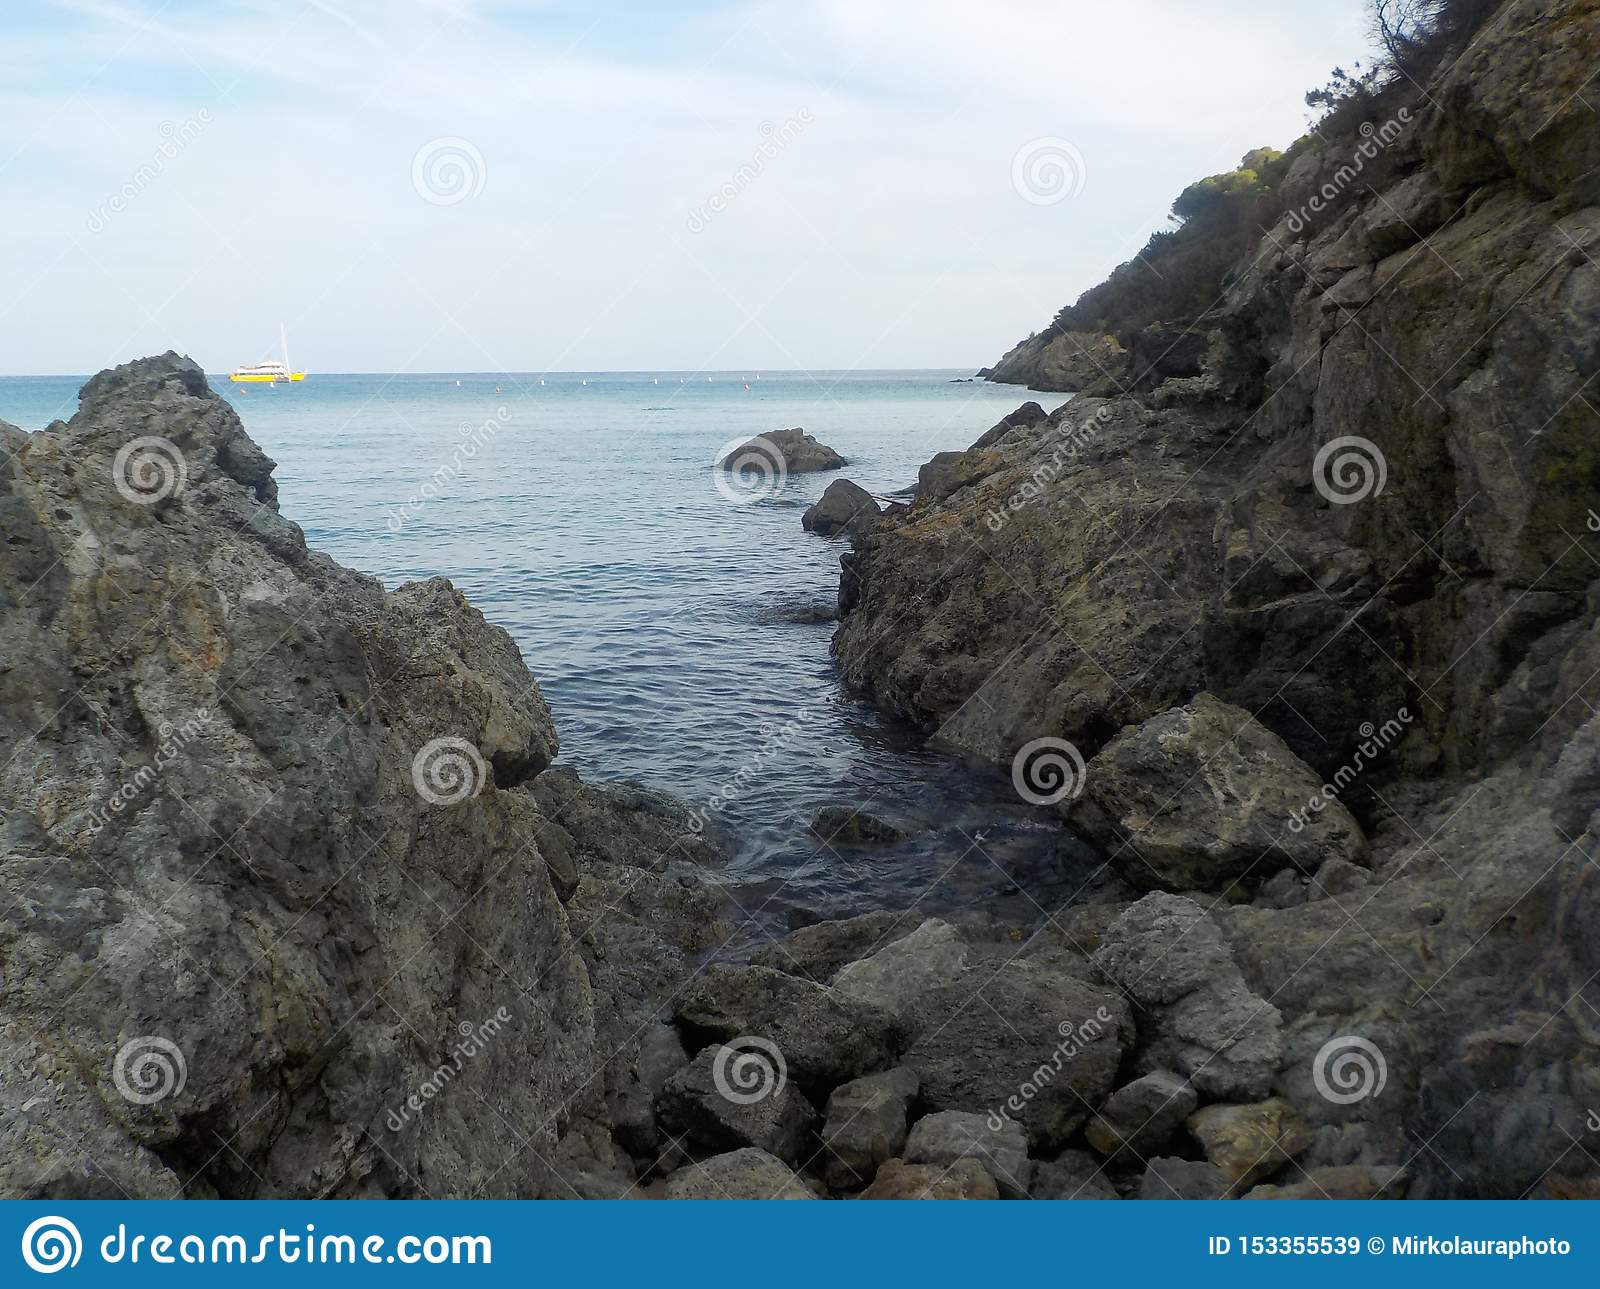 Rocks and blue sea with a distant yellow boat